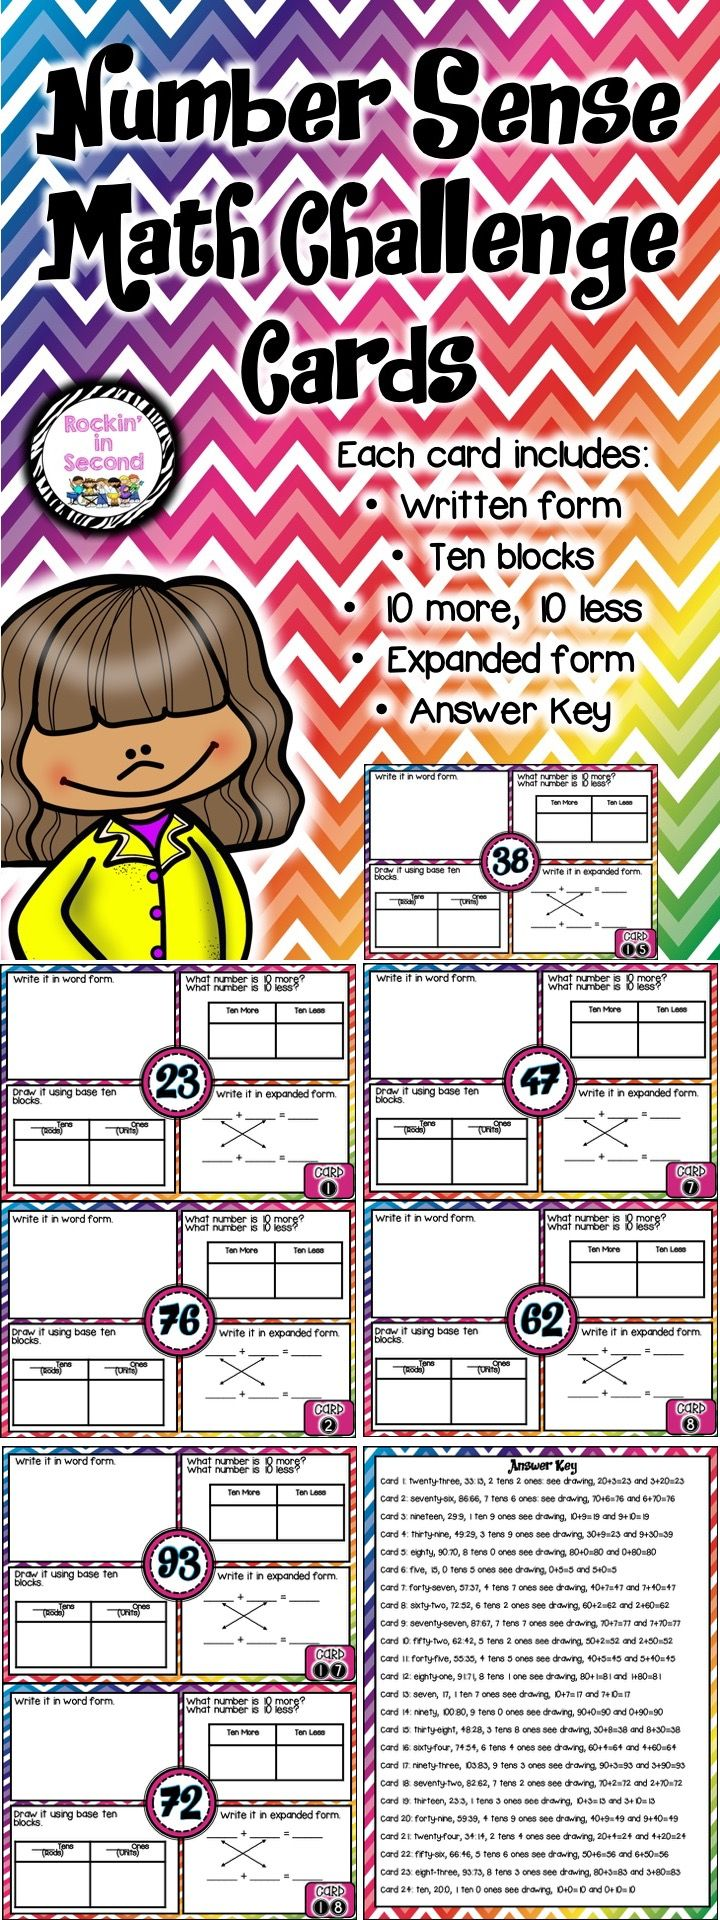 Number Sense Math Challenge Cards  This set includes 24 Math Challenge Cards. Each card includes: written form, expanded form, base ten blocks, and 10 more/10 less.  Use these cards for a whole group lesson, small group, individual, or when I am done activity.  Follow me on TPT for more exciting activities and FREEBIES!! All new products are 50% off for the first 24 hours.